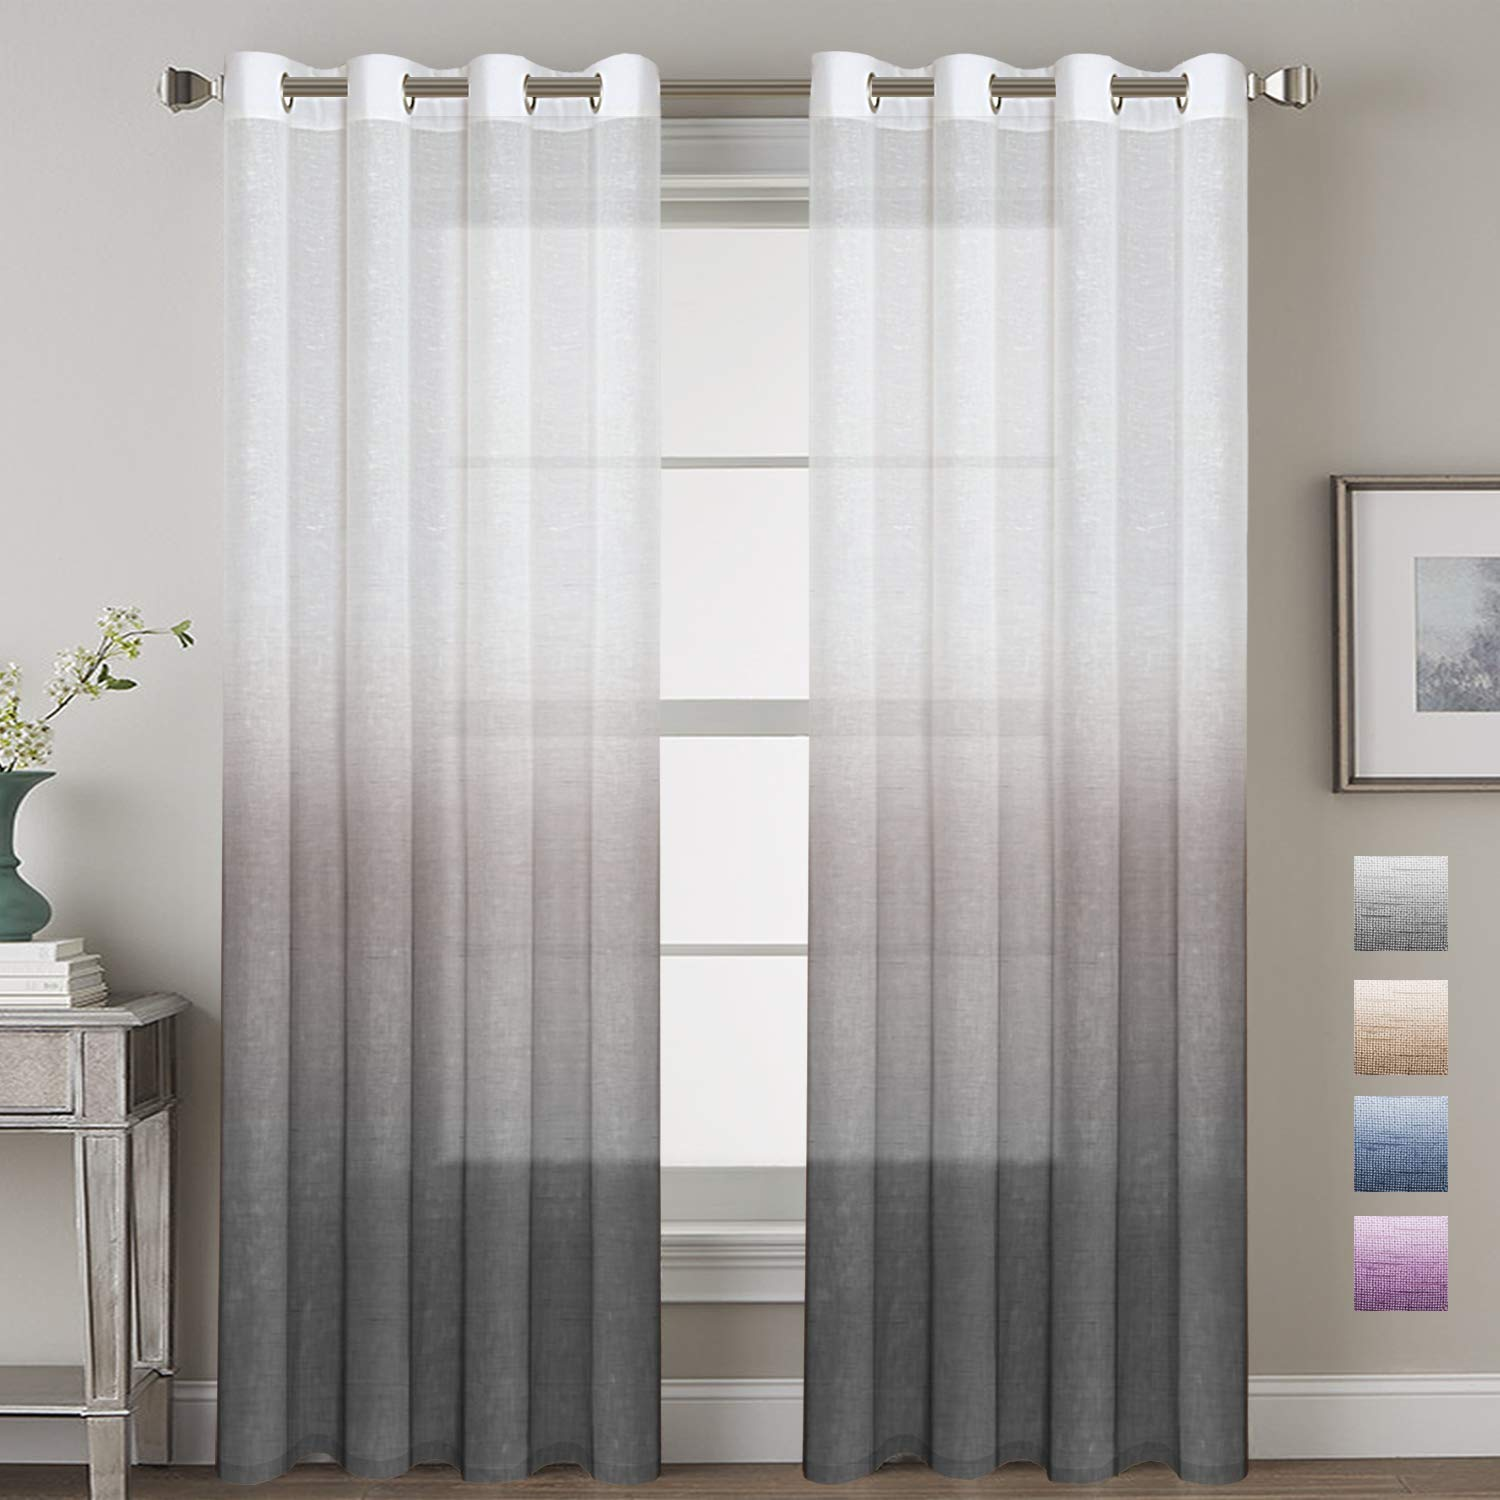 H.VERSAILTEX Linen Semi-Sheer Curtains Energy Efficient Privacy Protection Panels Ombre Natural Curtain Drapes with Tie-Back for Living Room, Grommet Top, Set of 2, 52x84-Inch, Gray